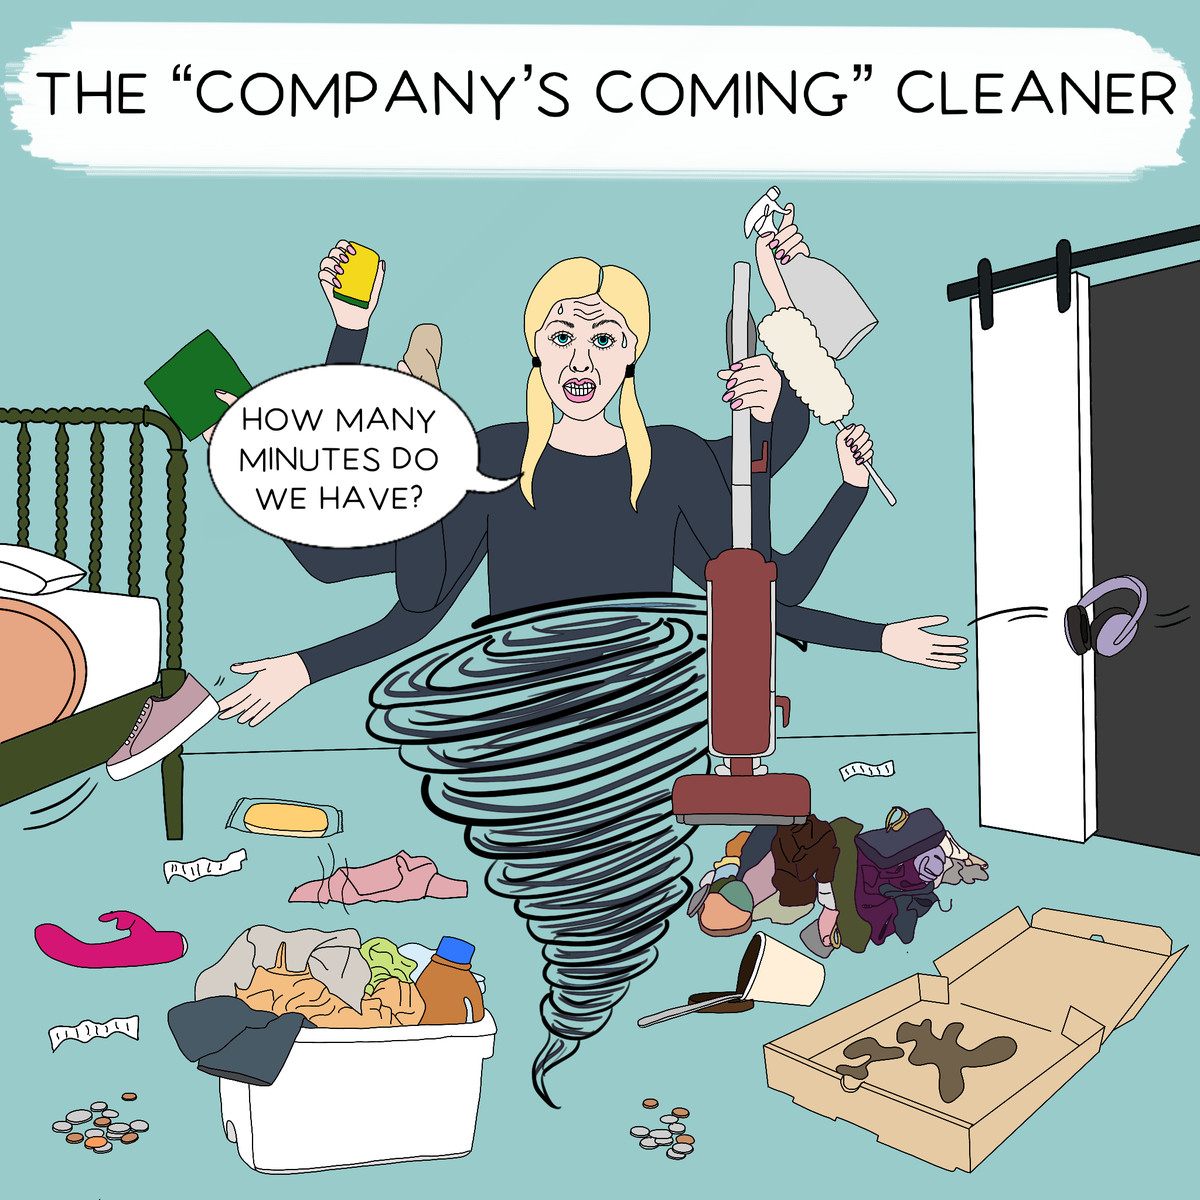 """""""The Company's Coming Cleaner"""" shows someone cleaning old pizza boxes and piles of clothes in a whirl-wind hurry, asking """"How many minutes do we have?"""" before company arrives."""